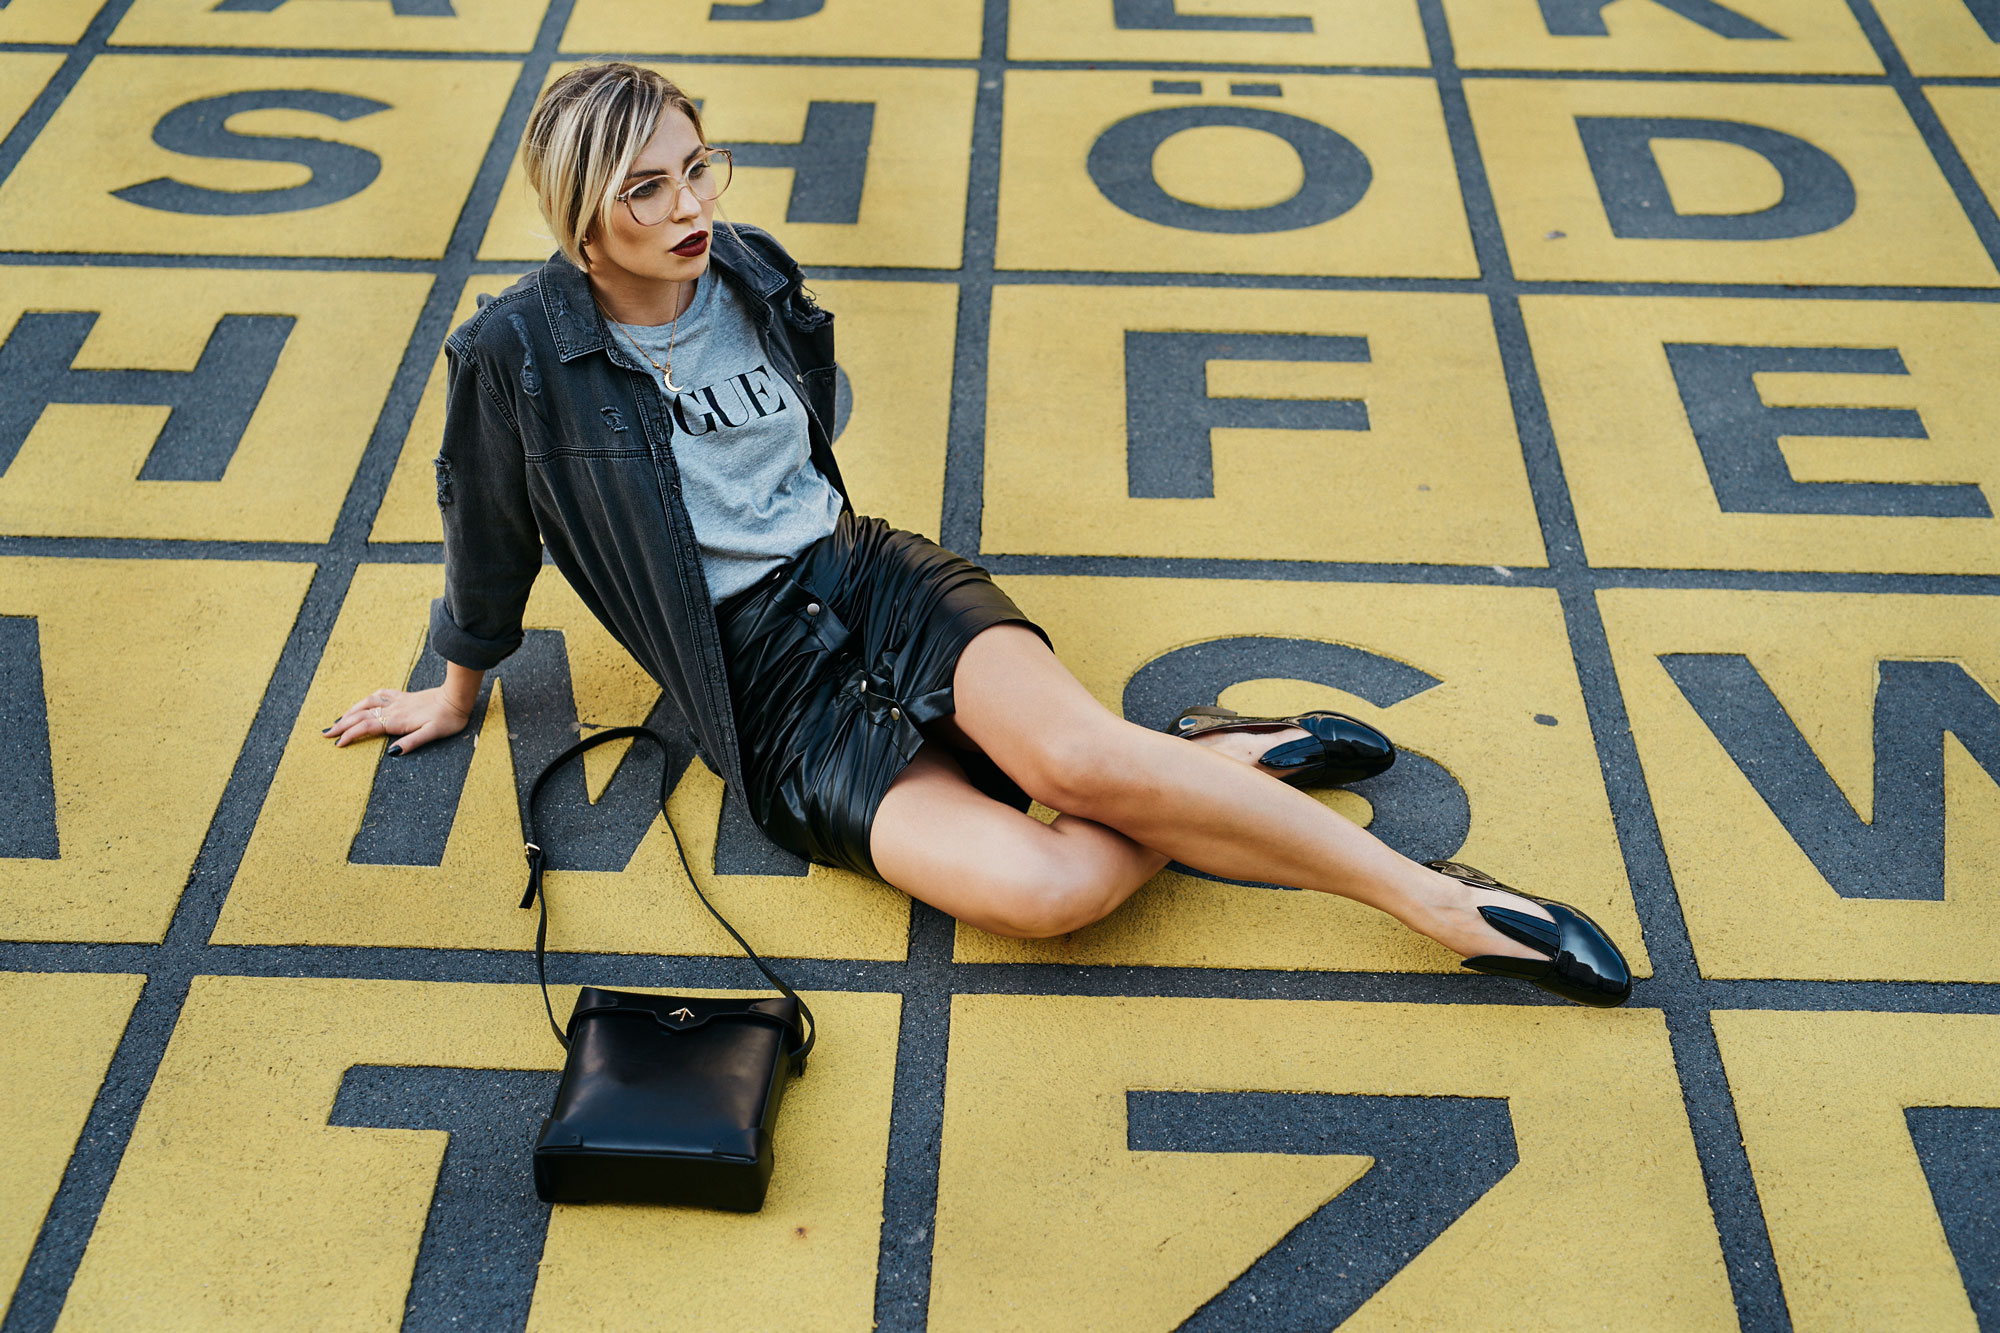 Outfit | style: classy, street style, edgy | shoes: Minna Parikka, bag: Manu Atelier, shirt: Vogue